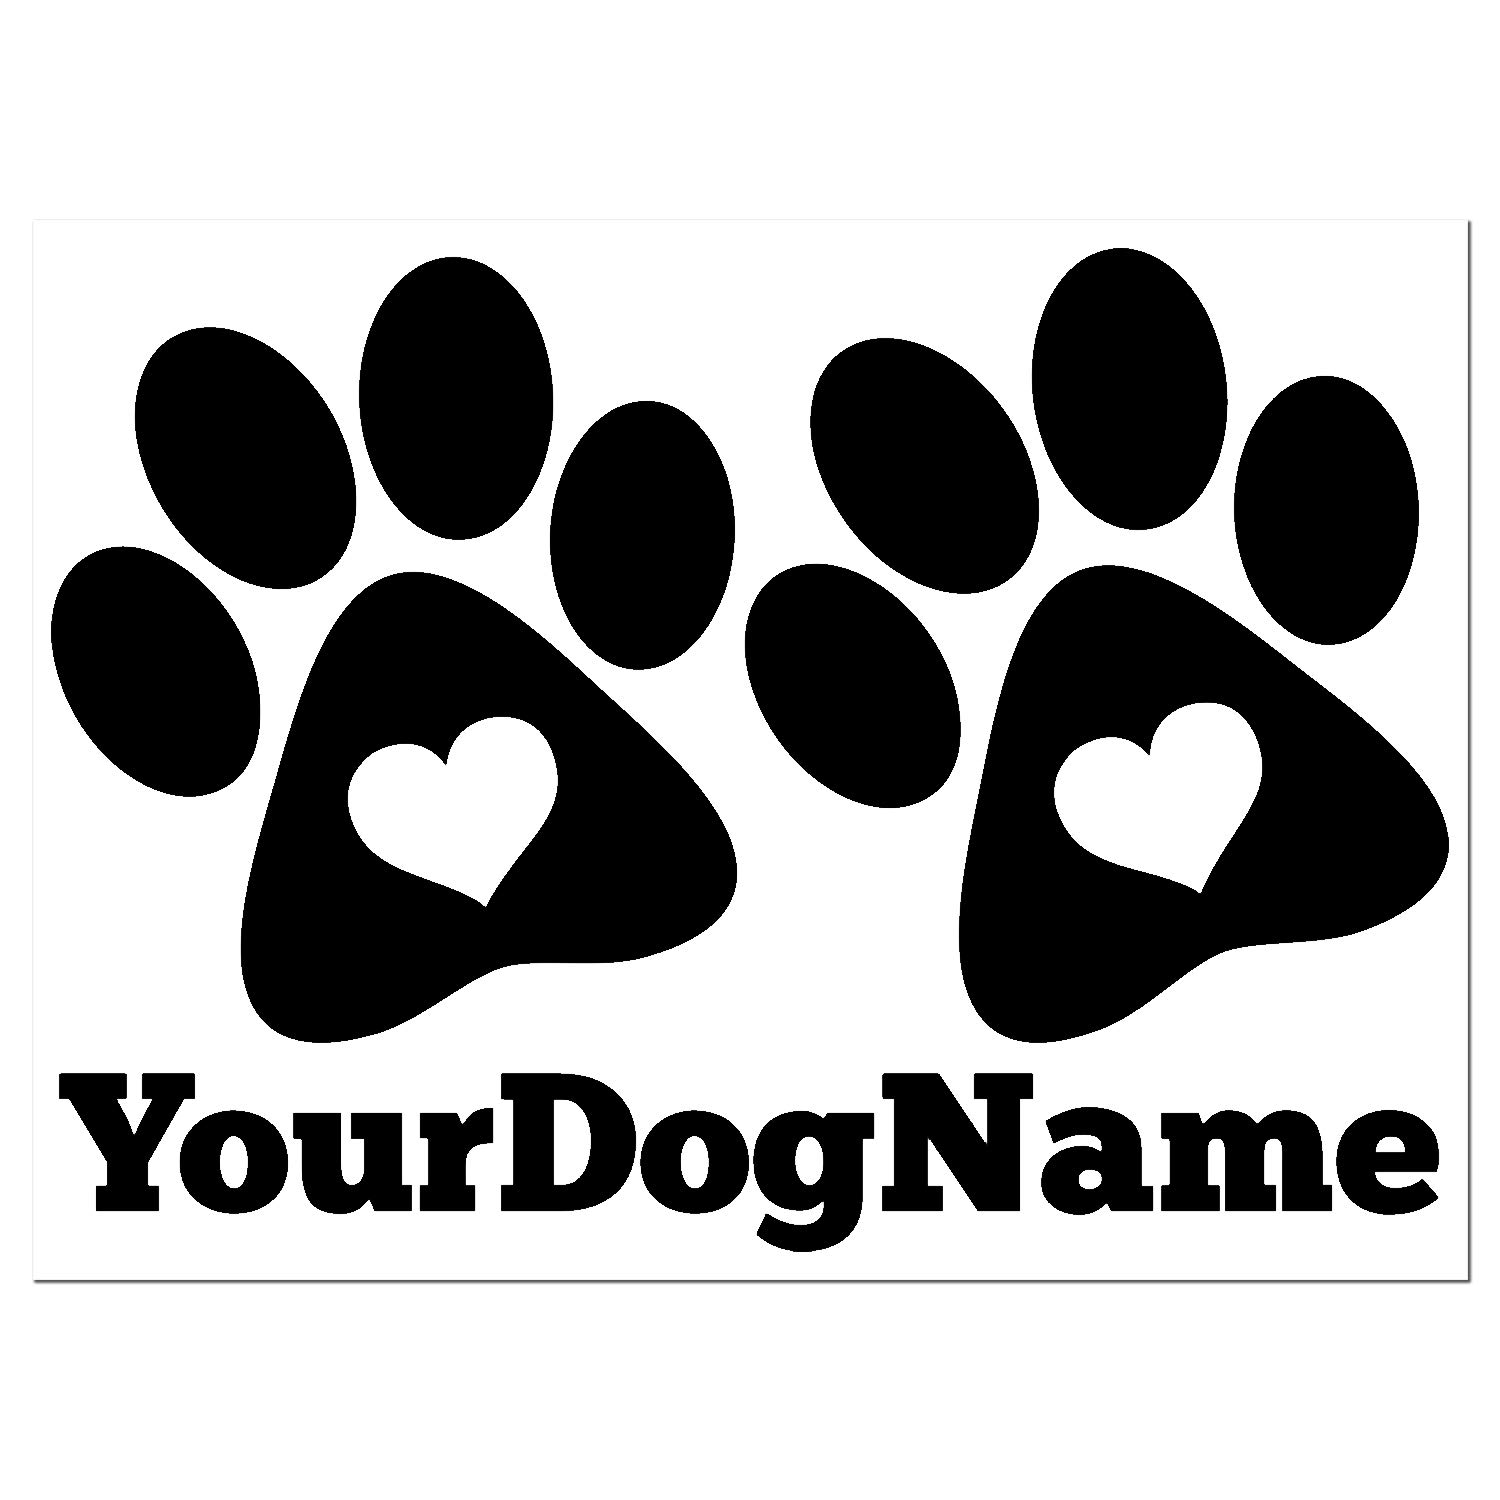 Amazon.com: Dog Paws With Dog Name Decal - Pet Dog Footprint and Name  Custom Vinyl Sticker - Dog Lover Decal - Many Colors and Sizes to Choose  From: Handmade